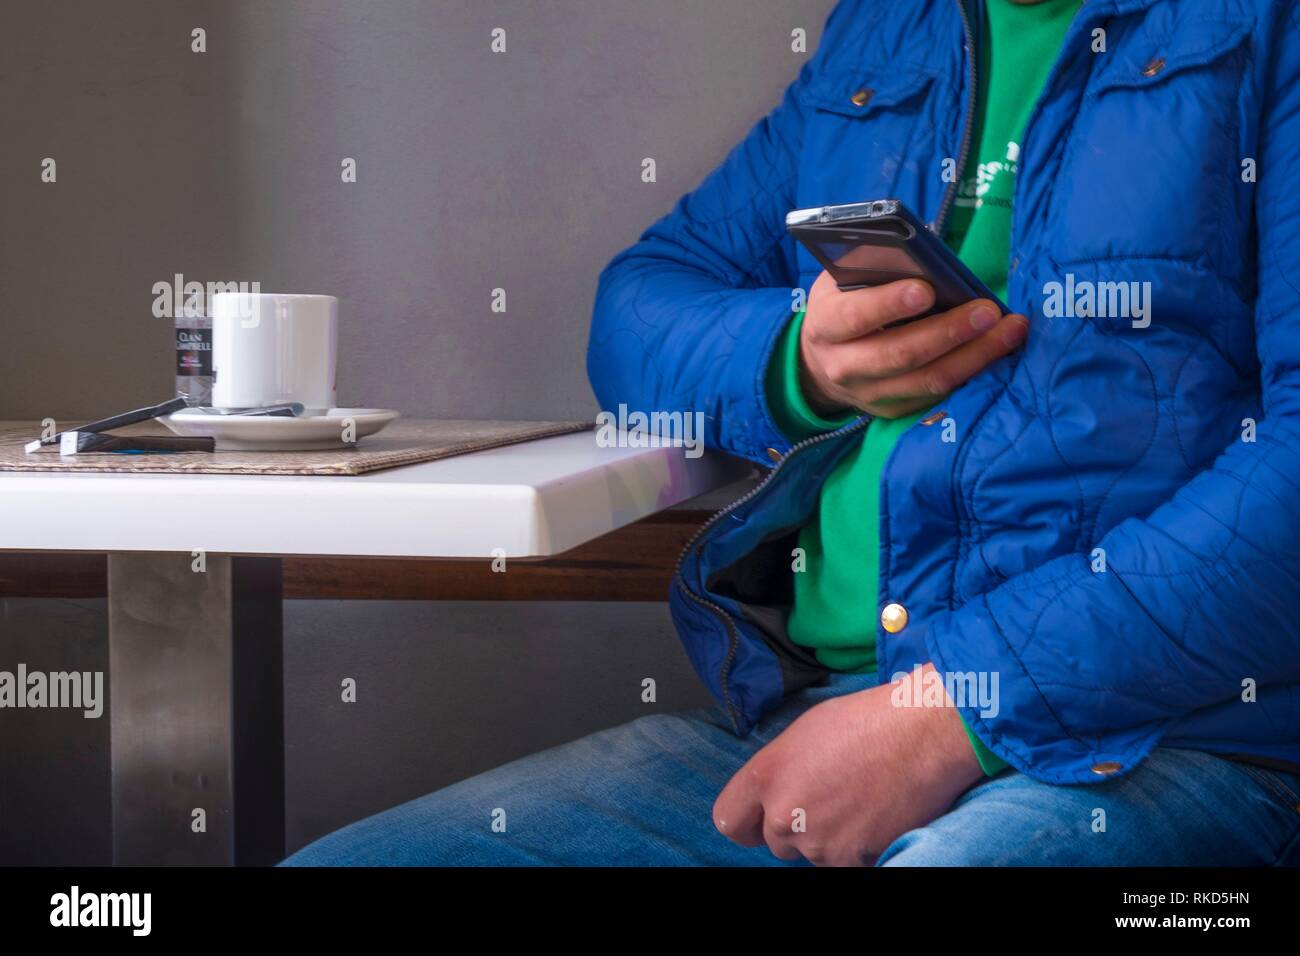 Man in cafe, using cell phone. France - Stock Image